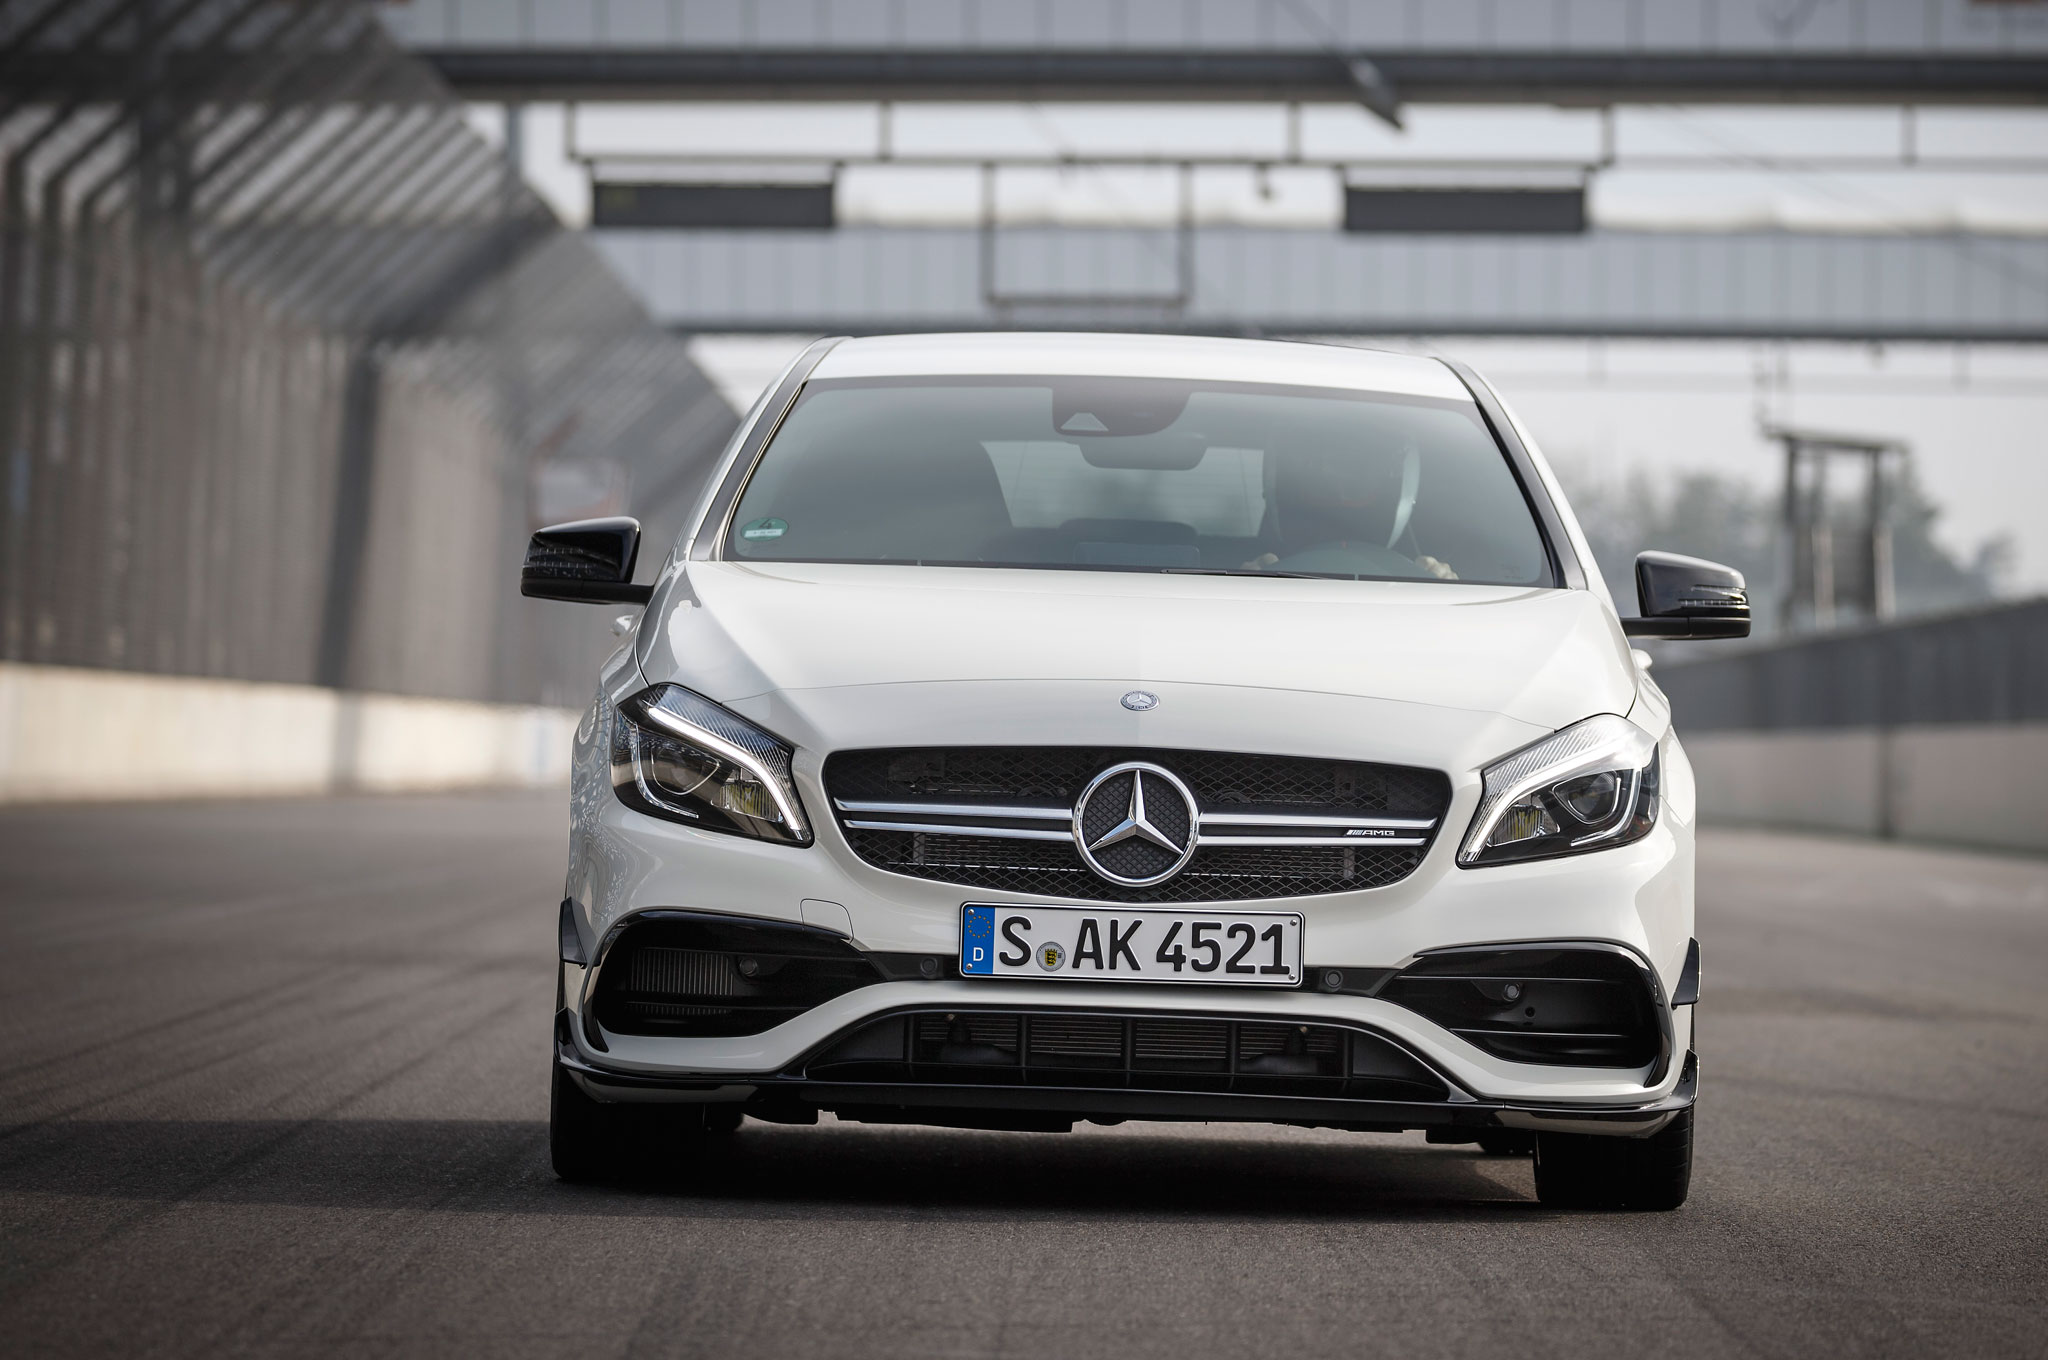 http://st.automobilemag.com/uploads/sites/11/2015/09/2016-Mercedes-AMG-A45-4Matic-front-end-03.jpg